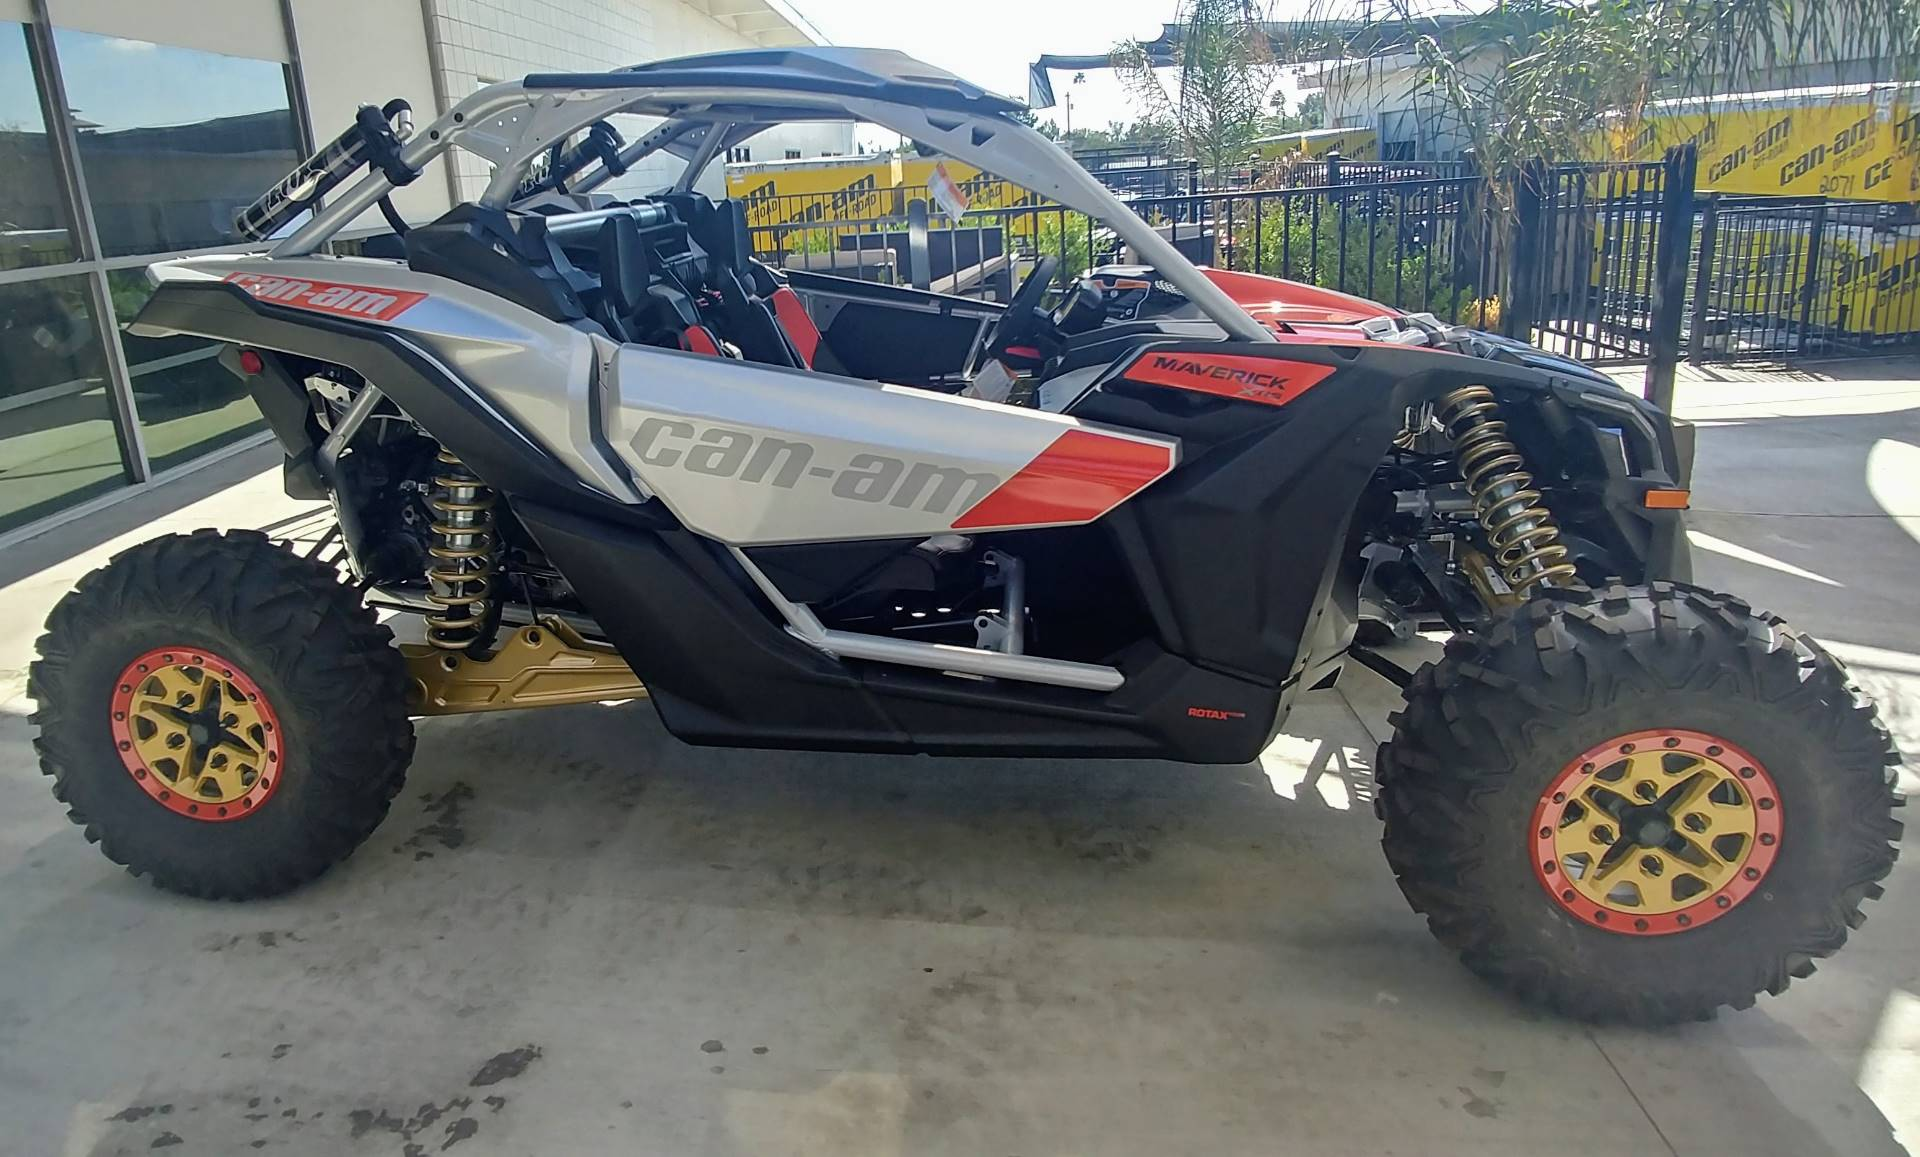 2019 Can-Am Maverick X3 X rs Turbo R for sale 8784